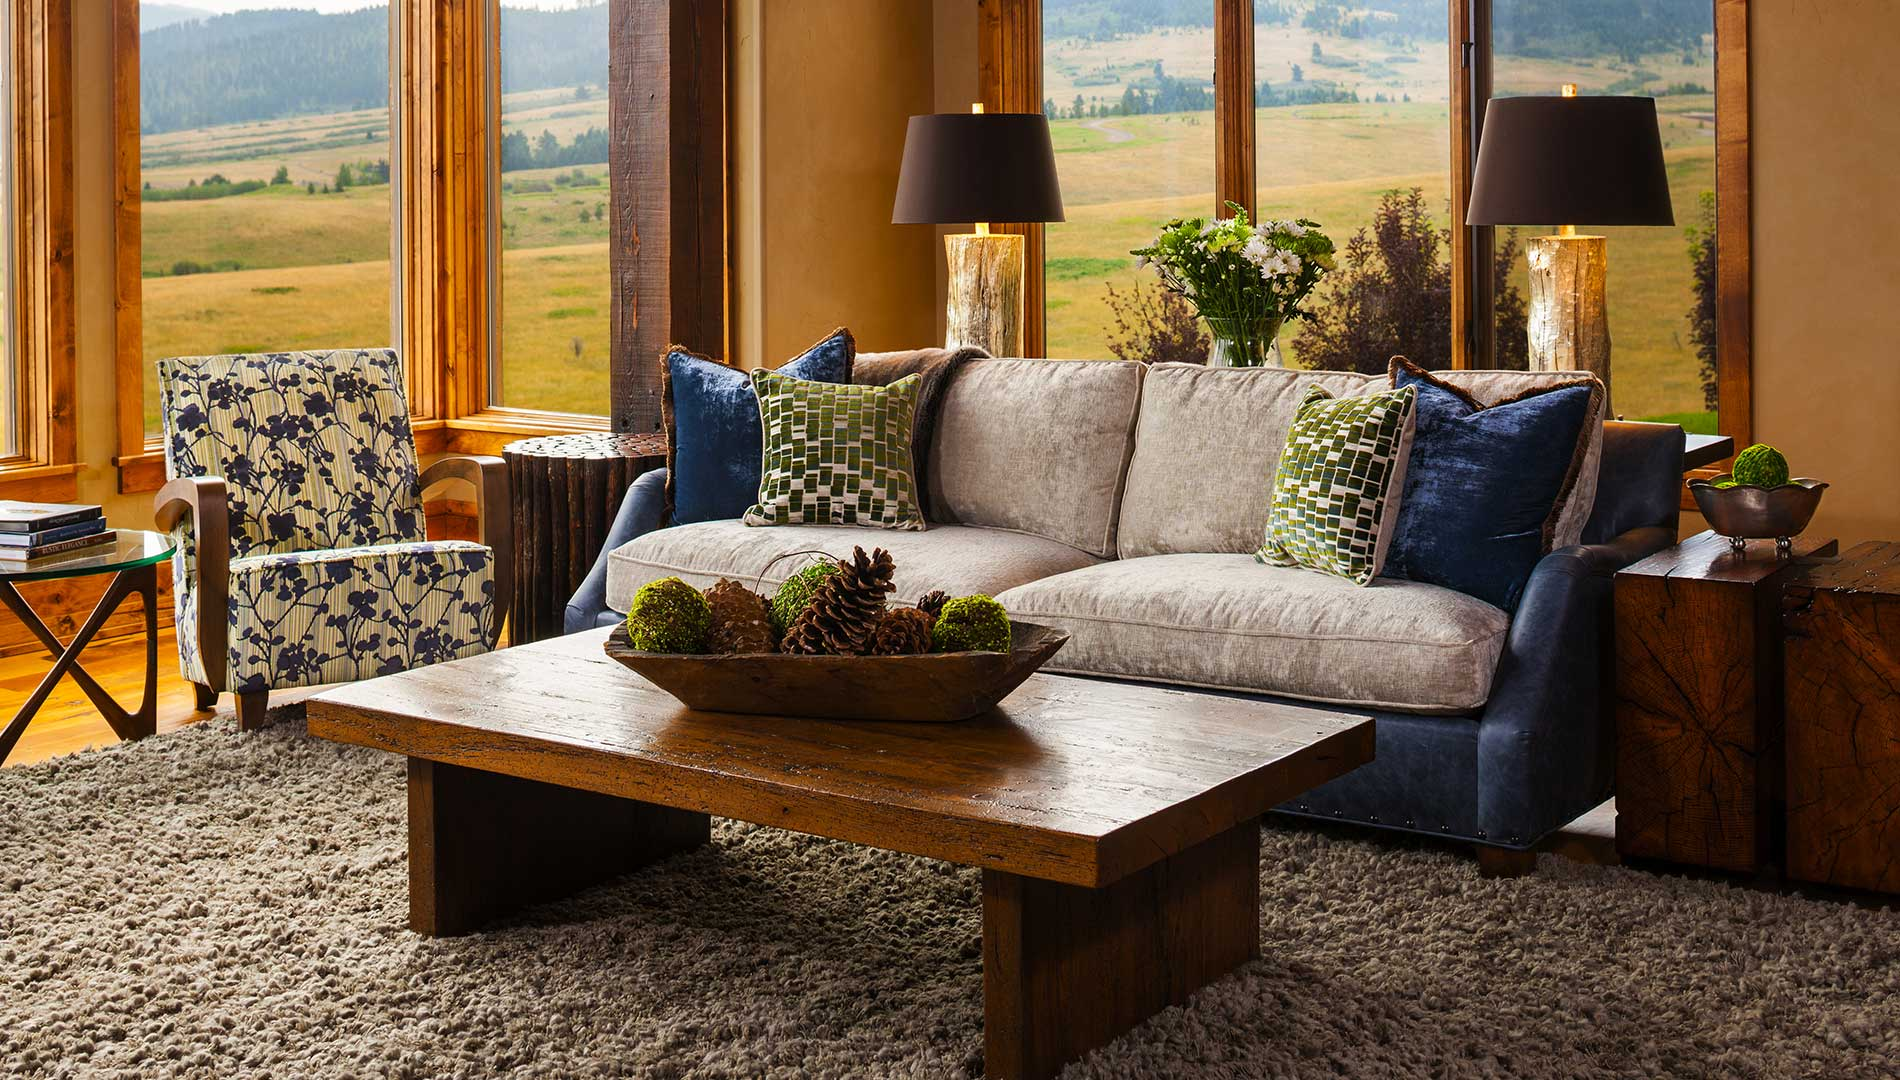 living-room-bozeman-retreat-elizabeth-robb-interiors-1900x1080